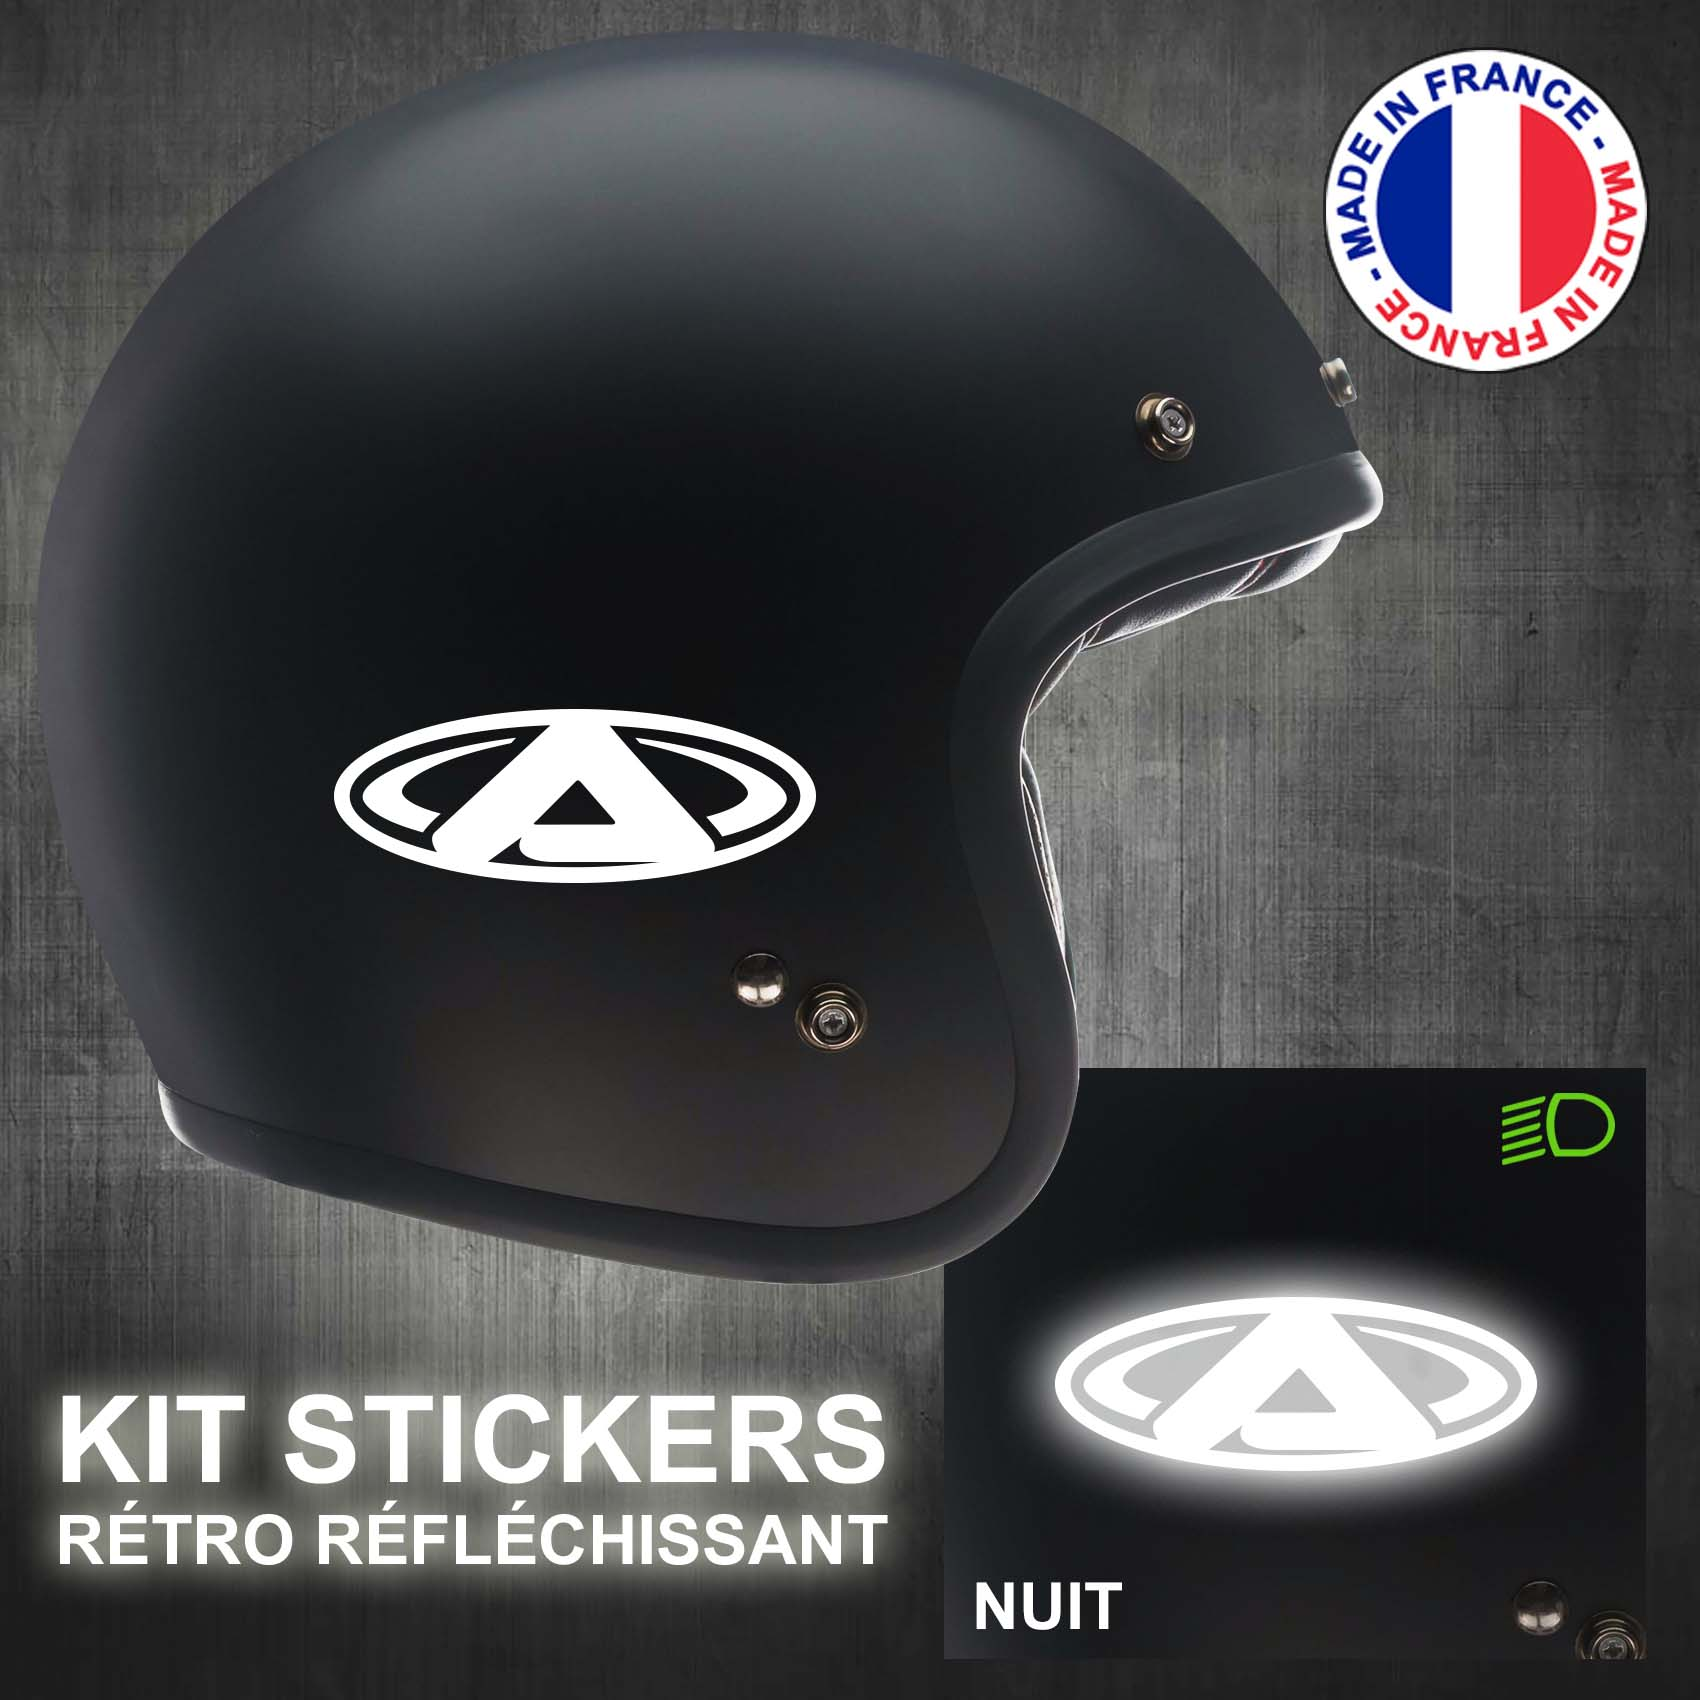 stickers-casque-moto-acerbis-ref3-retro-reflechissant-autocollant-noir-moto-velo-tuning-racing-route-sticker-casques-adhesif-scooter-nuit-securite-decals-personnalise-personnalisable-min